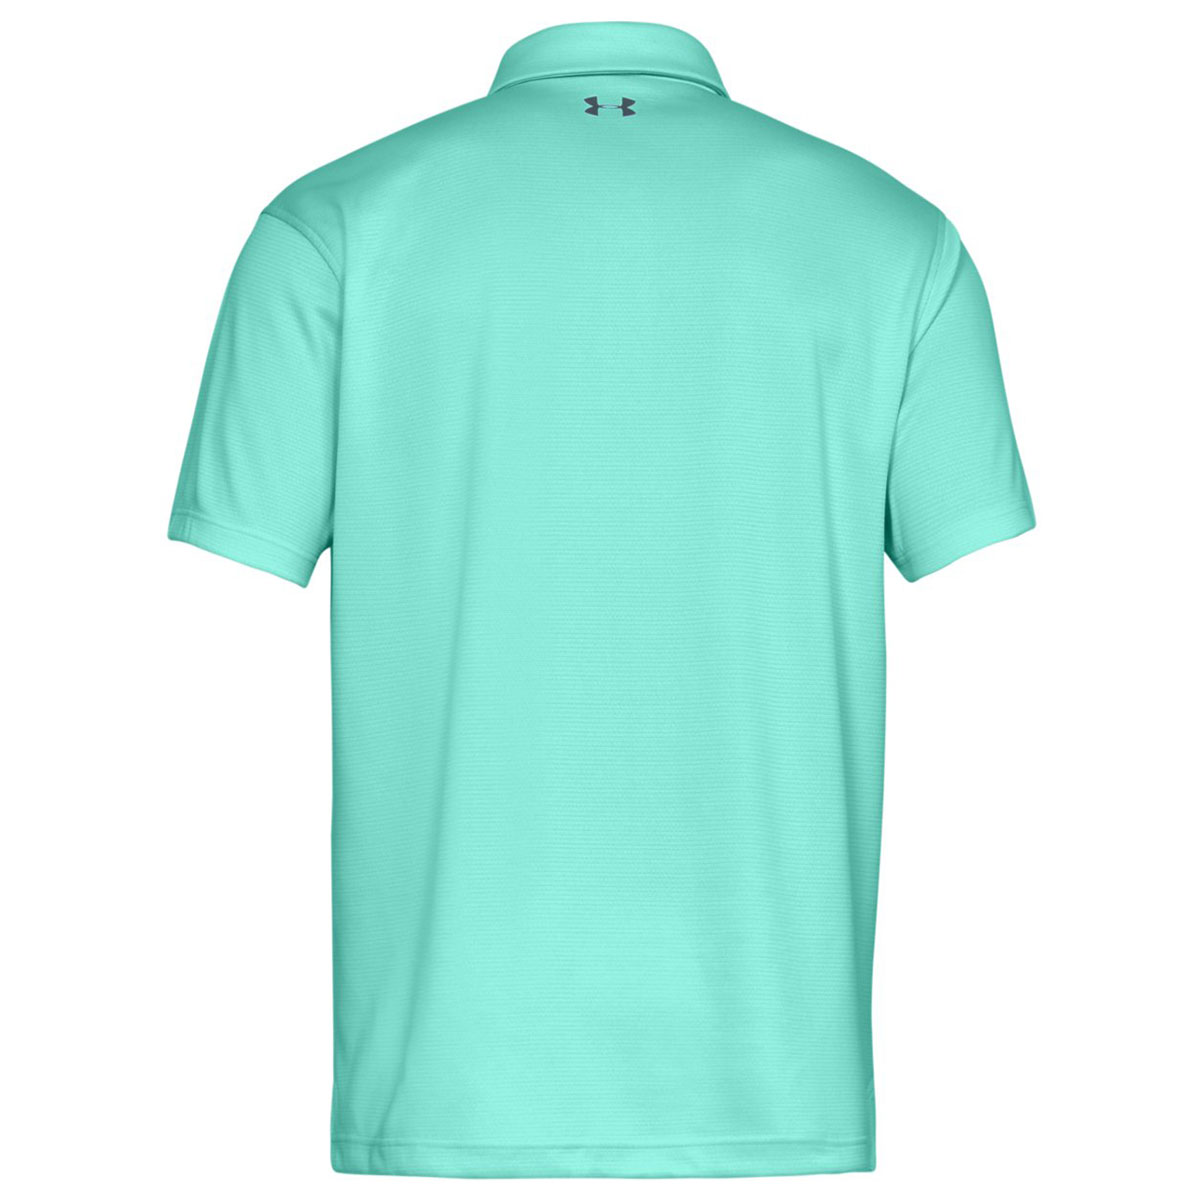 Under-Armour-Mens-2019-Golf-Tech-Wicking-Textured-Soft-Light-Polo-Shirt thumbnail 59